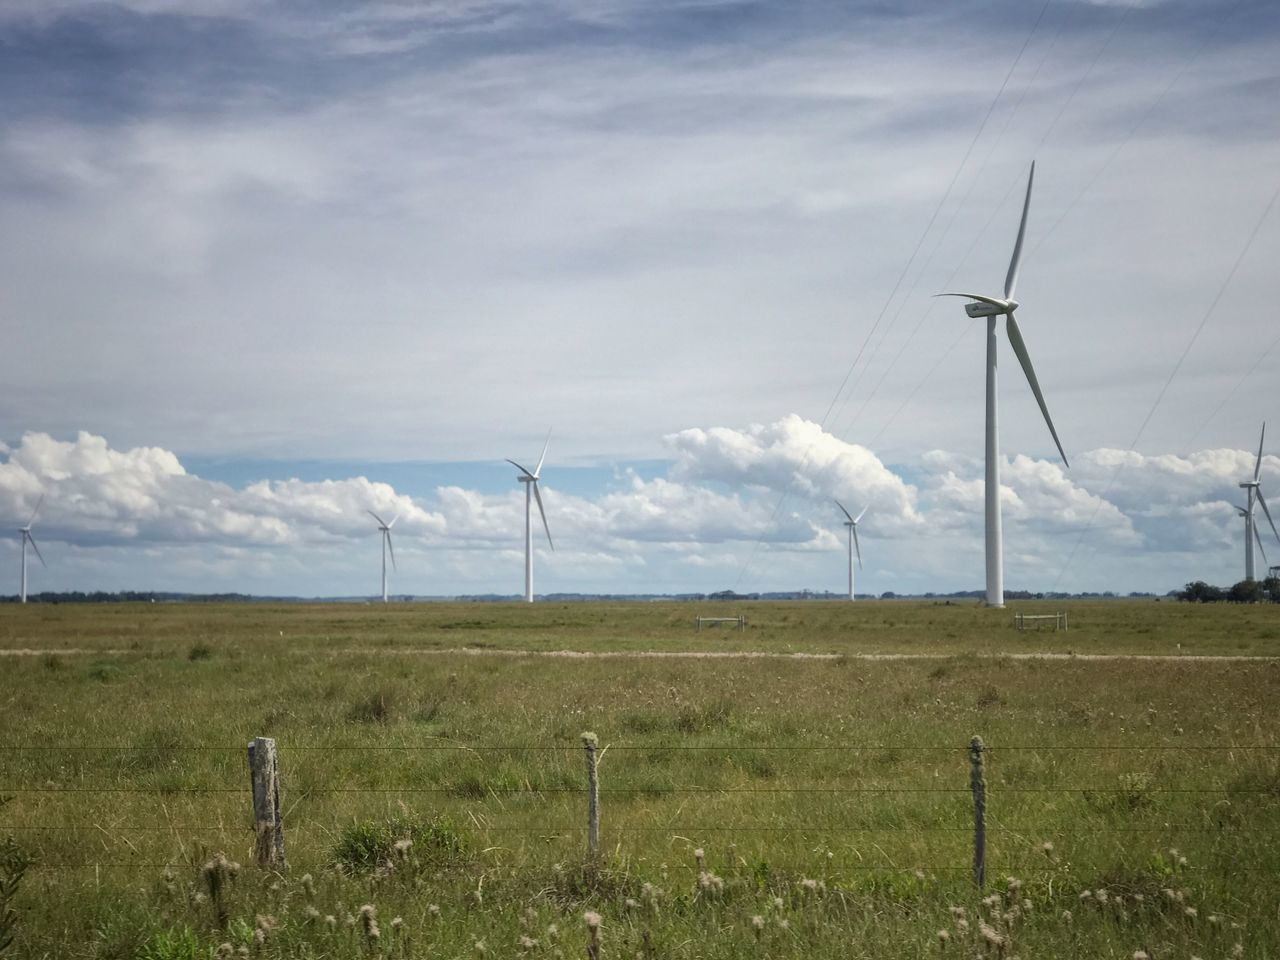 environment, fuel and power generation, wind turbine, sky, renewable energy, alternative energy, environmental conservation, turbine, field, landscape, land, cloud - sky, wind power, technology, nature, day, no people, rural scene, grass, scenics - nature, outdoors, electricity, power supply, sustainable resources